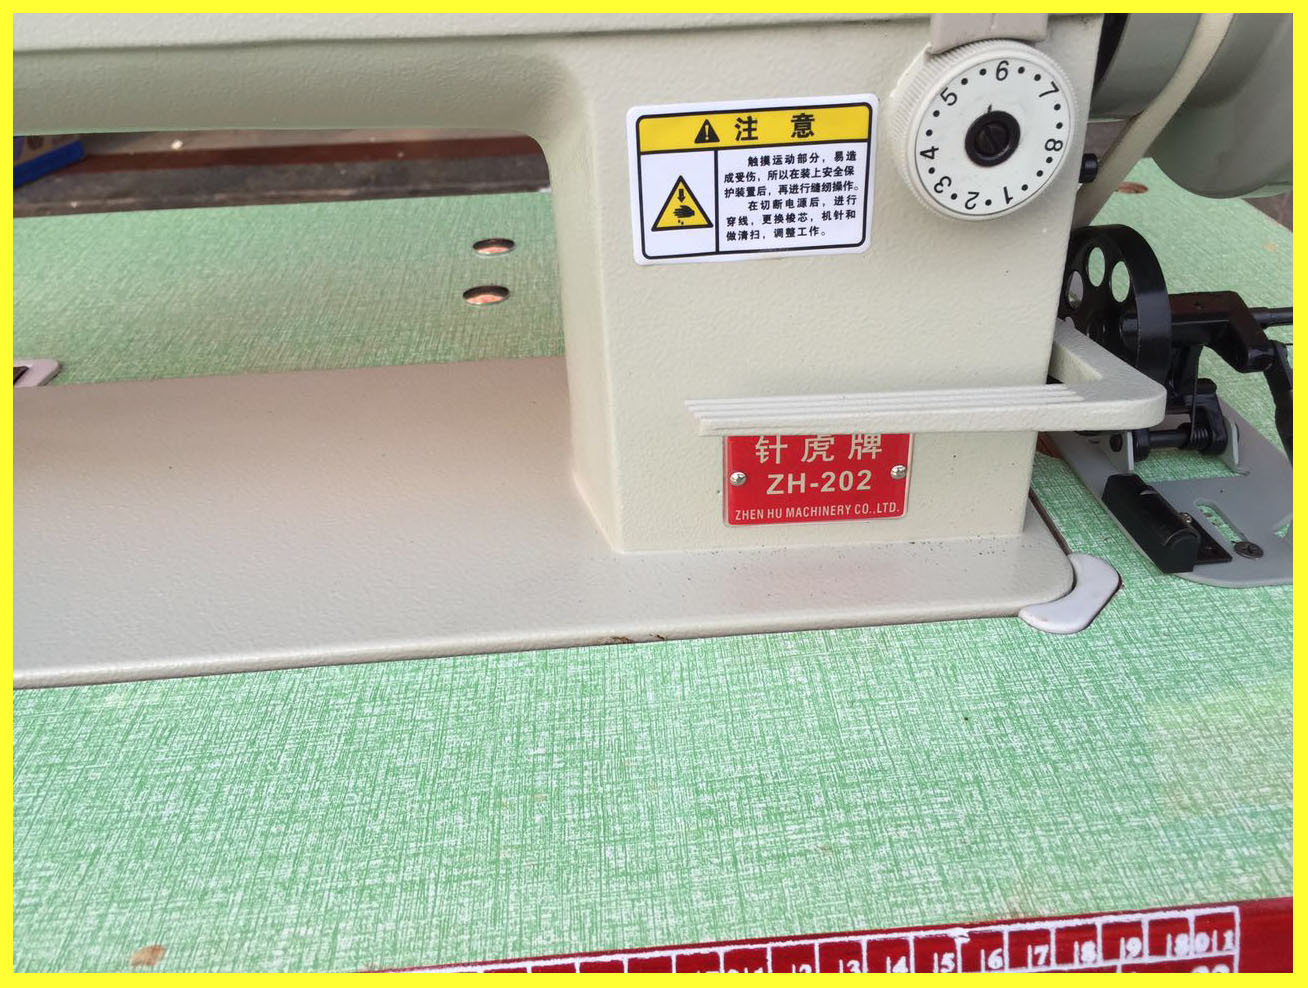 Zhenhu High Speed Flat Bed Lockstitch Sewing Machine (ZH-202)